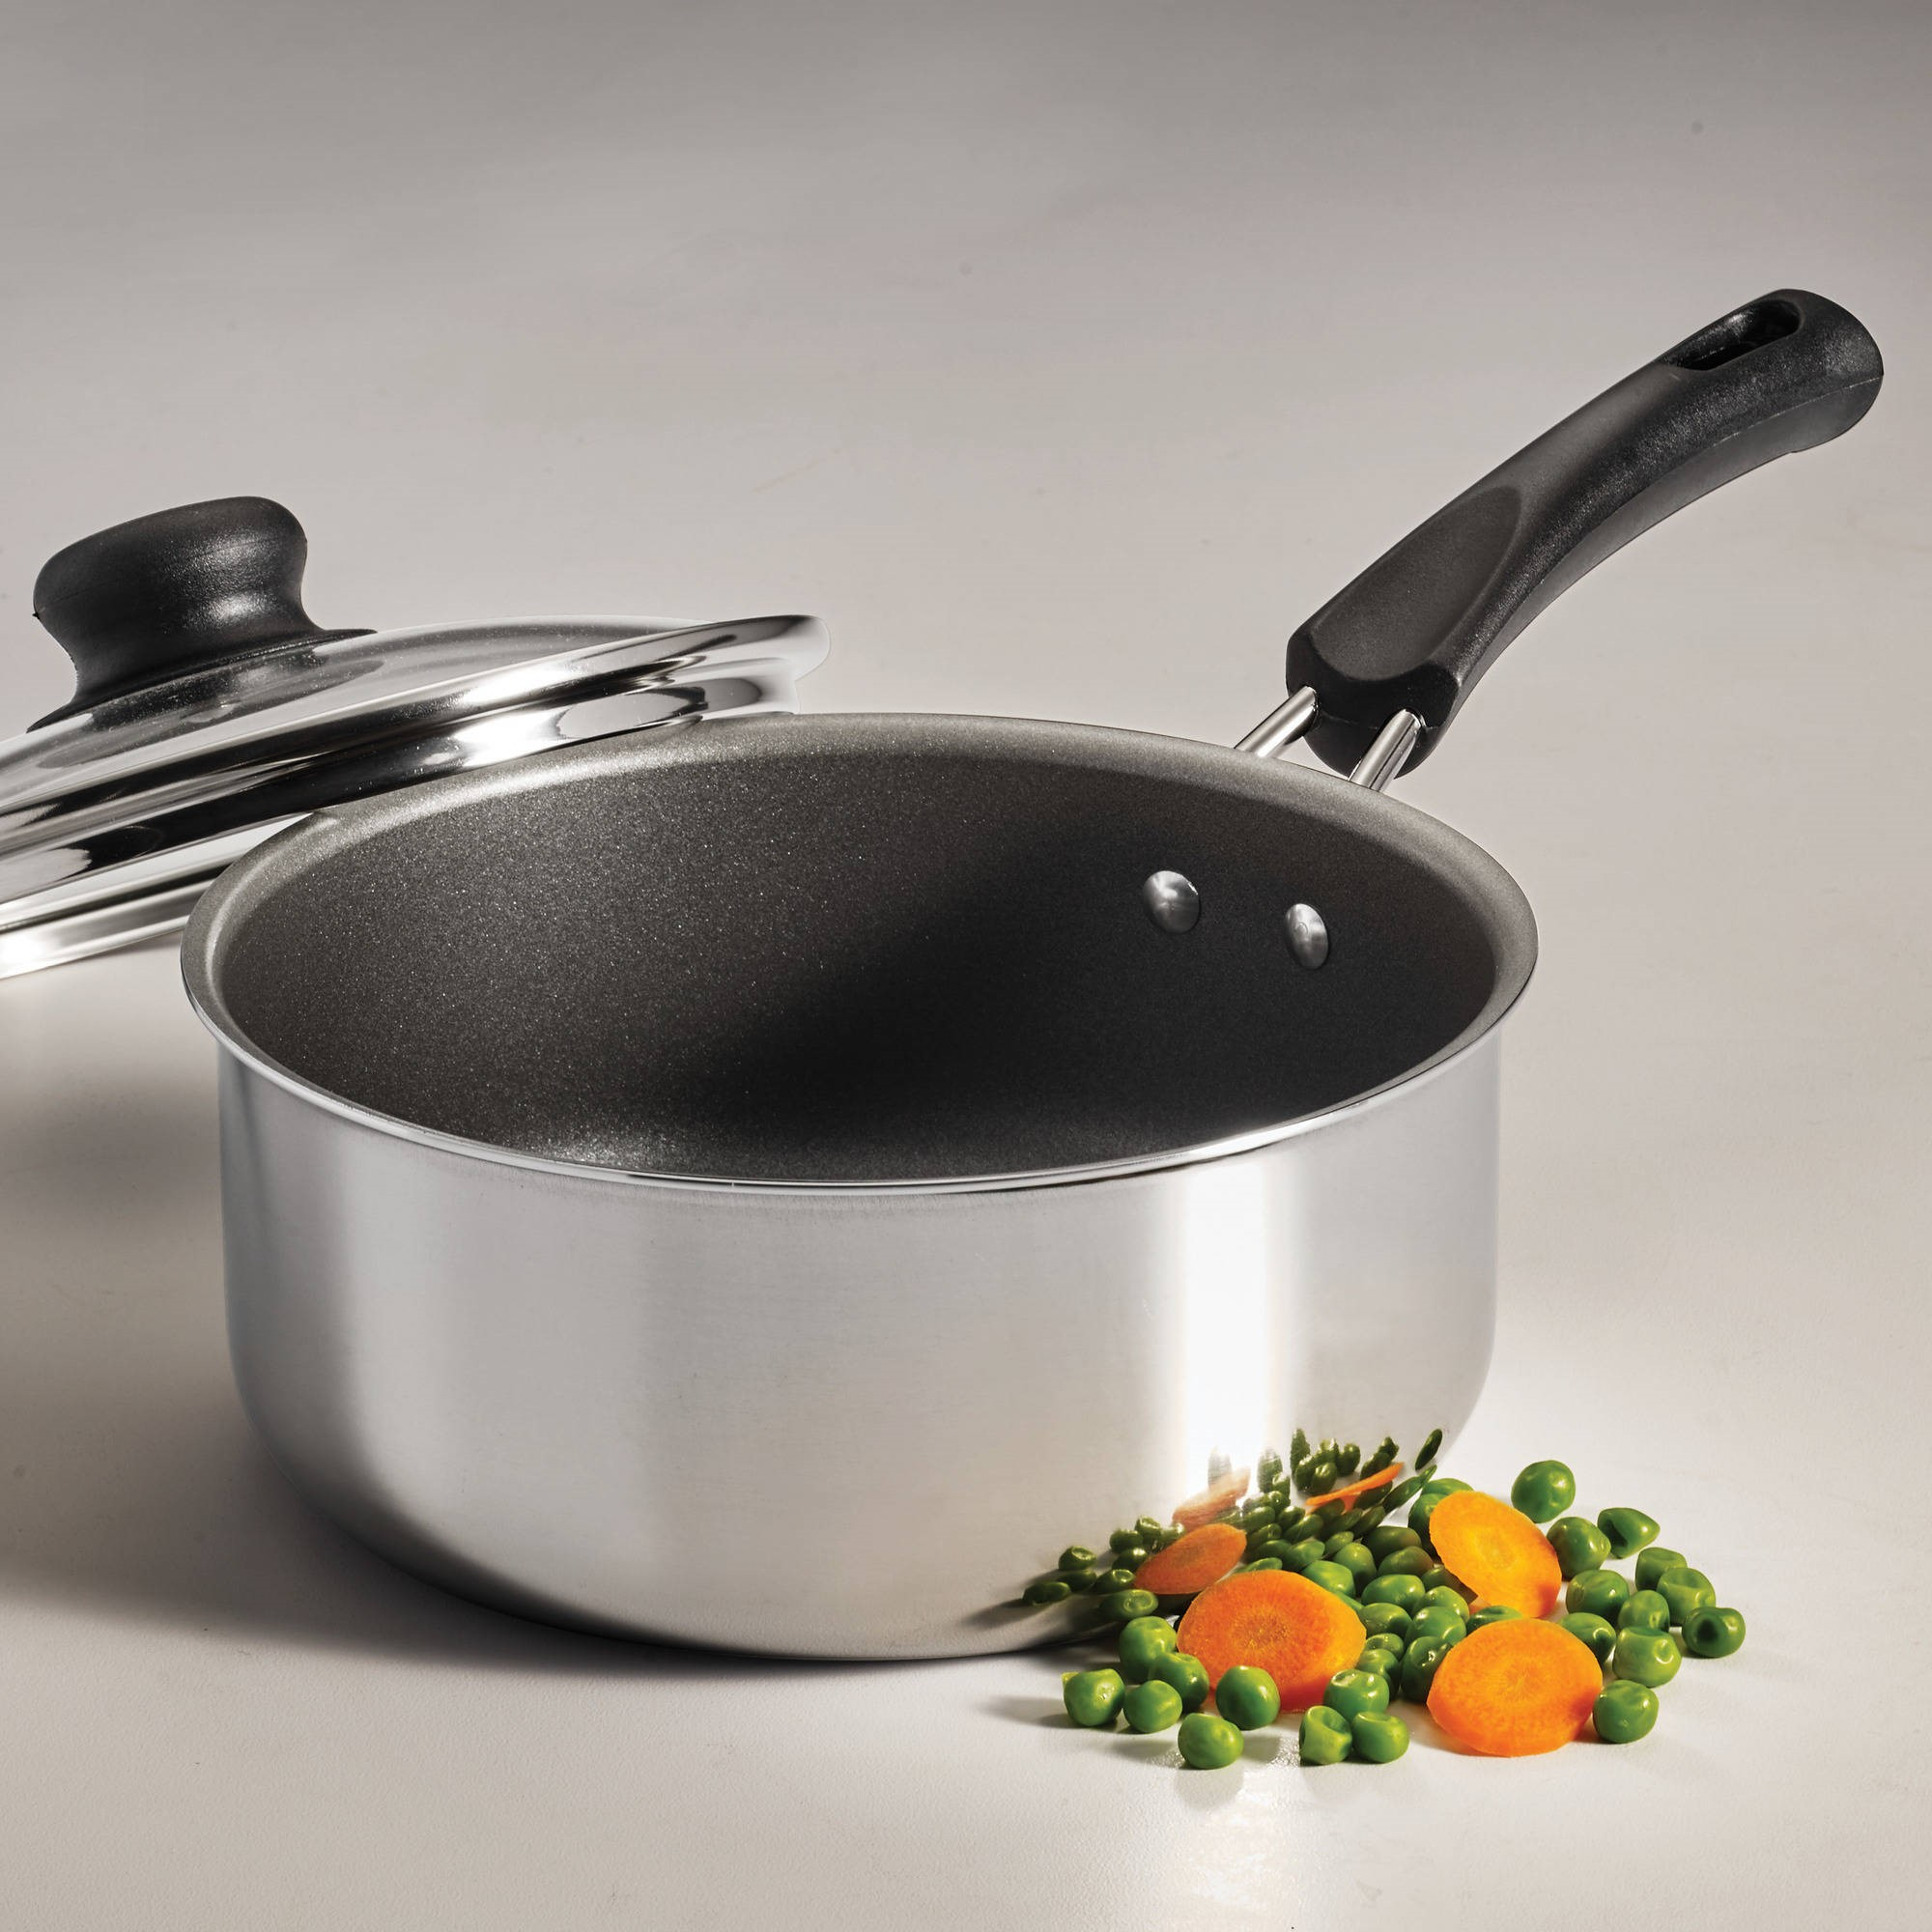 Tramontina Simple Cooking 2-Quart Polished Nonstick Covered Sauce Pan